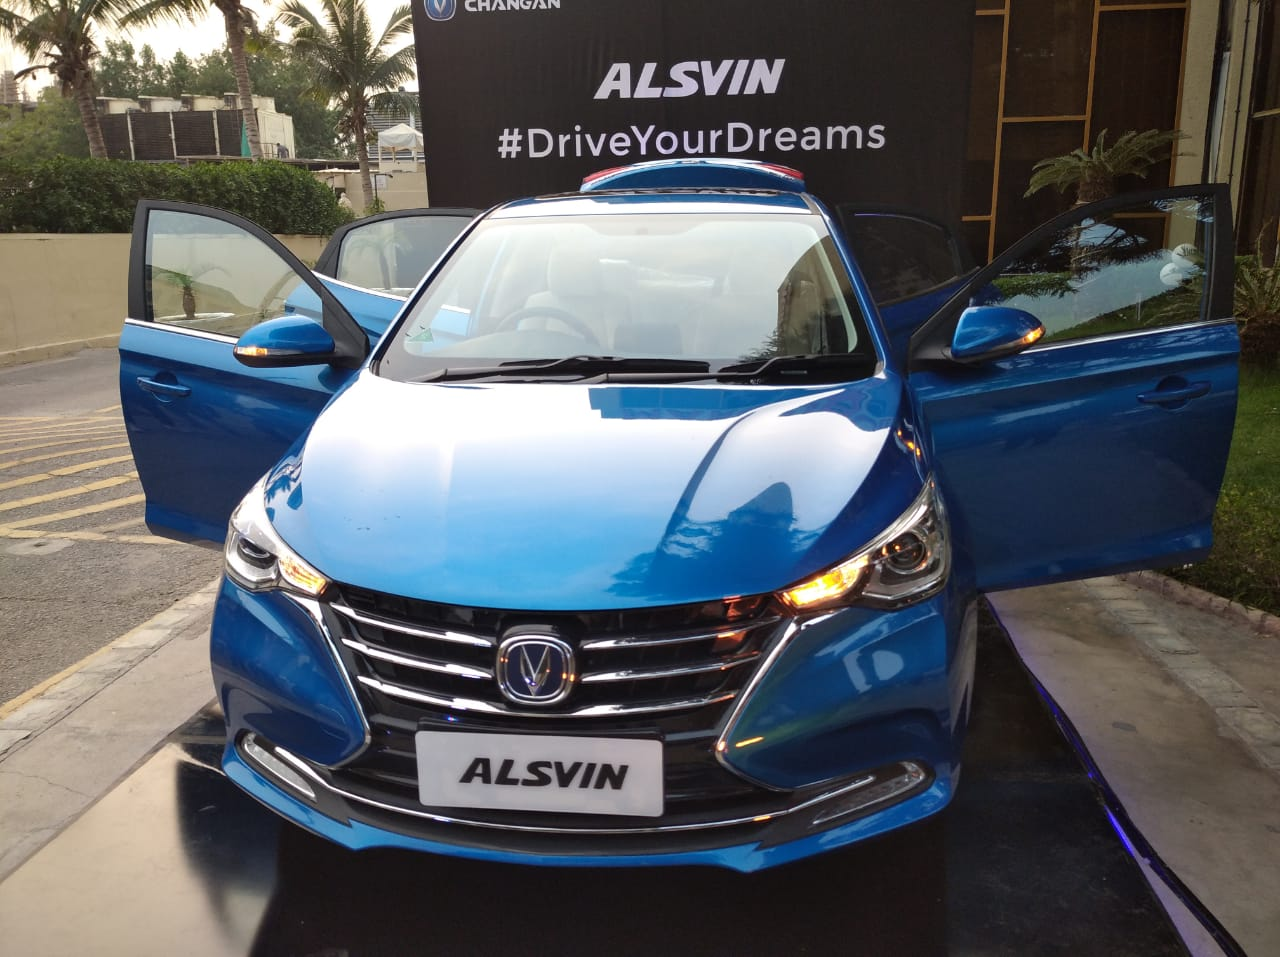 Pakistan Assembled Changan Alsvin Rolls Off the Assembly Lines 2